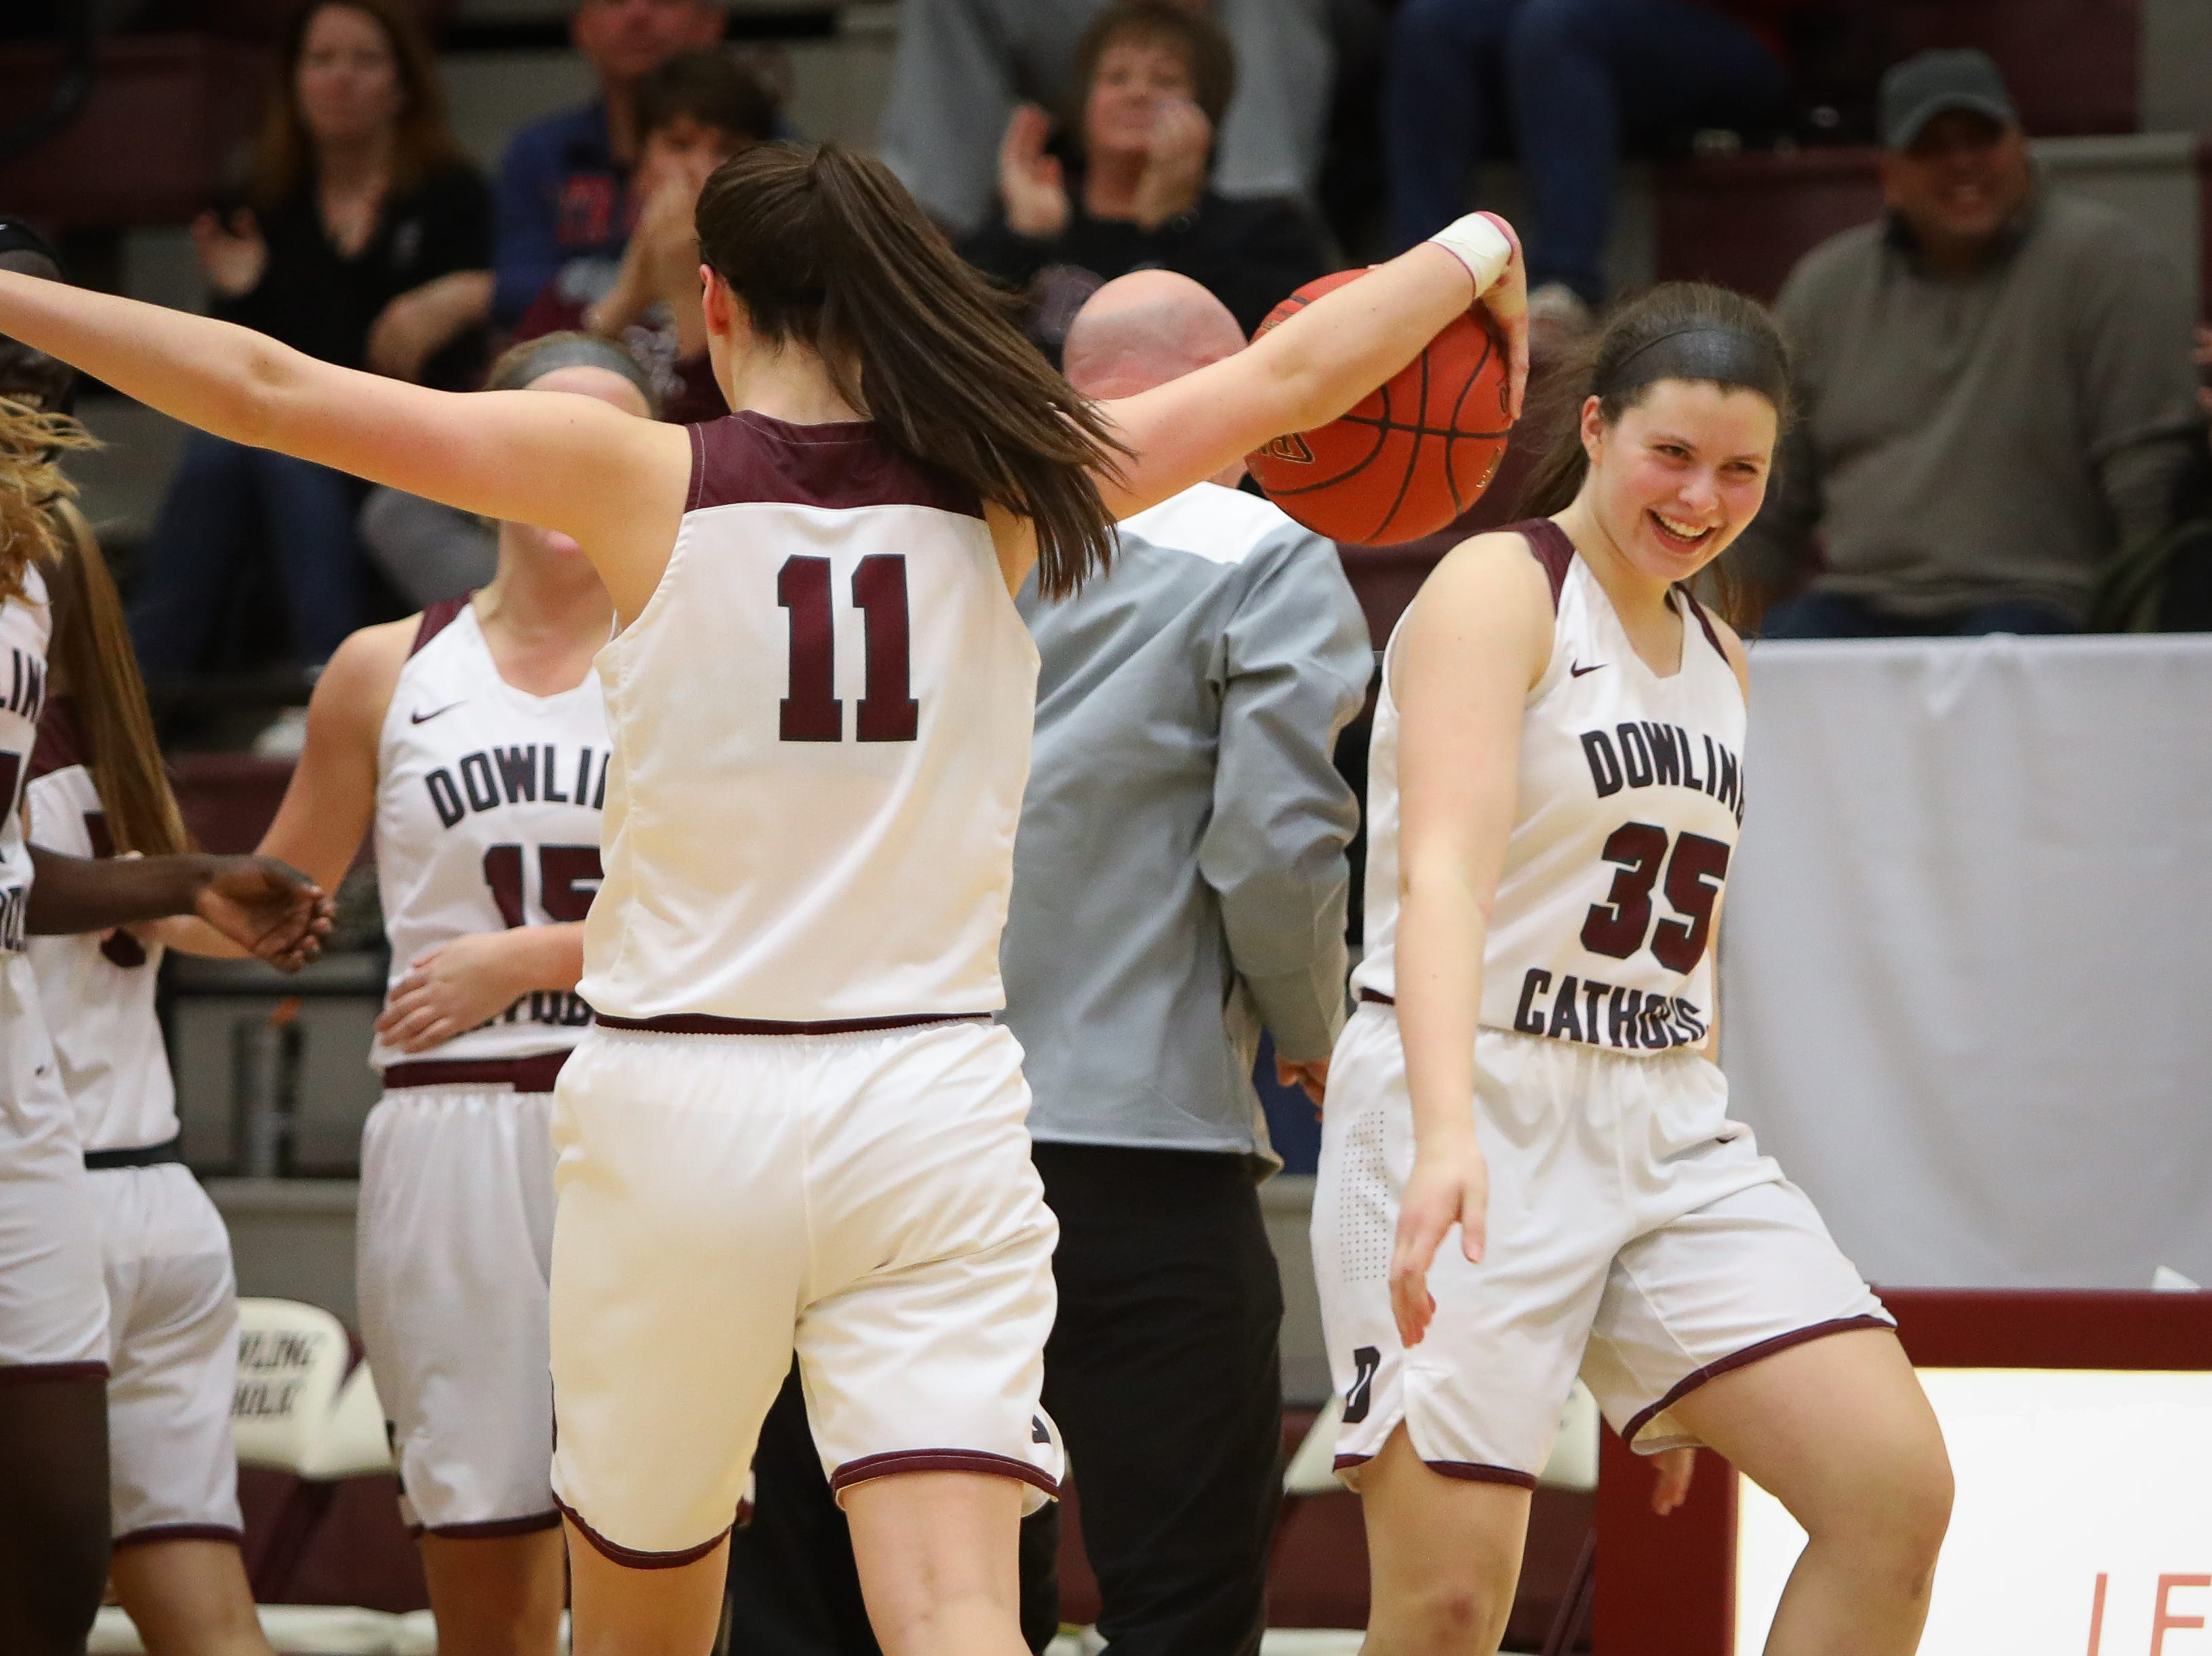 Dowling junior Caitlin Clark (#11) celebrates with senior Jacey Koethe after the Maroons defeated the J-Hawks, 73-71, in a girls high school basketball game between Urbandale and Dowling at Dowling Catholic High School on Jan. 11, 2019 in West Des Moines, Iowa. Clark scored 46 points in the game.